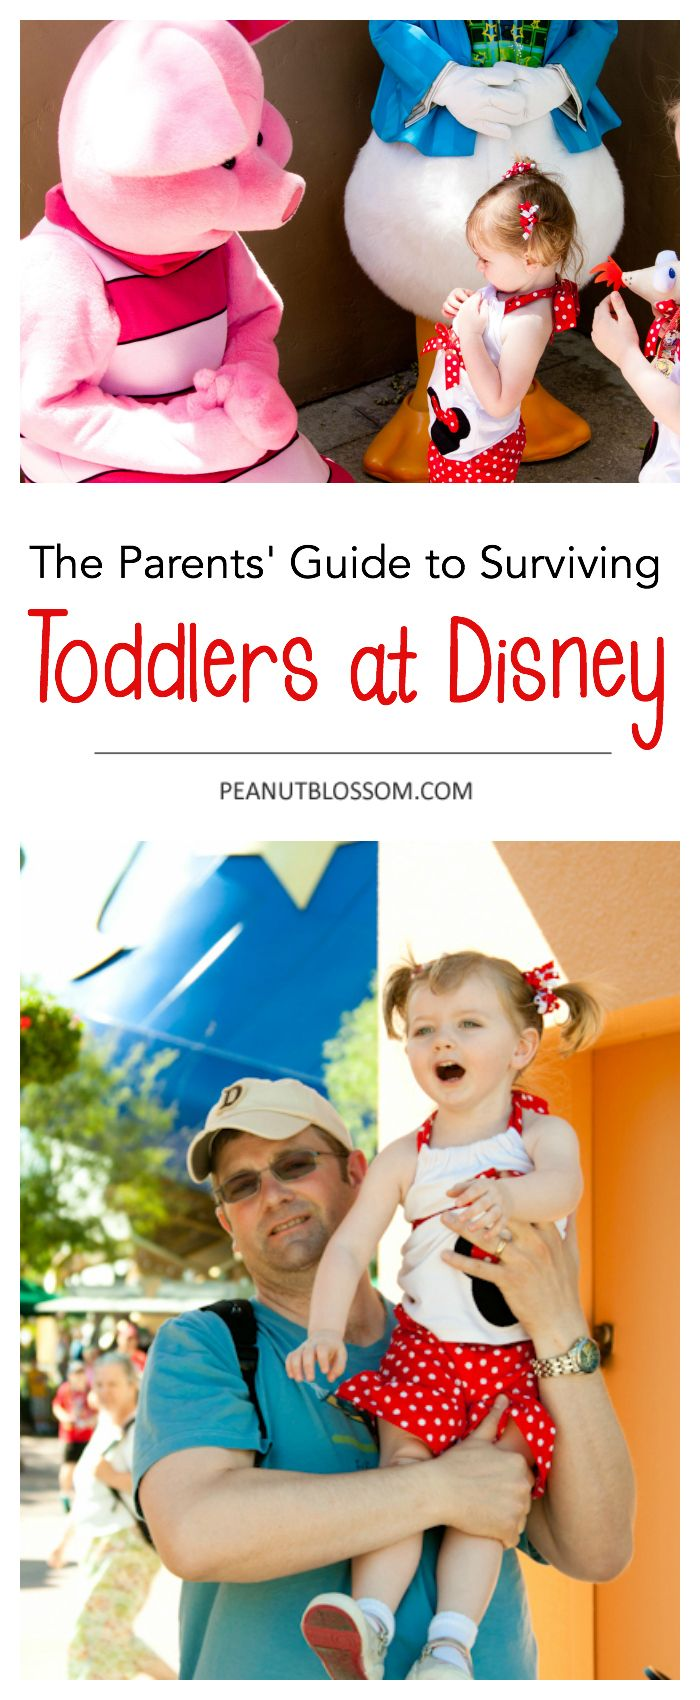 Parents' Guide to Surviving a Toddler at Disney. This is excellent Disney planning advice. Taking a toddler to Disney? Check out how to schedule your day and avoid meltdowns!